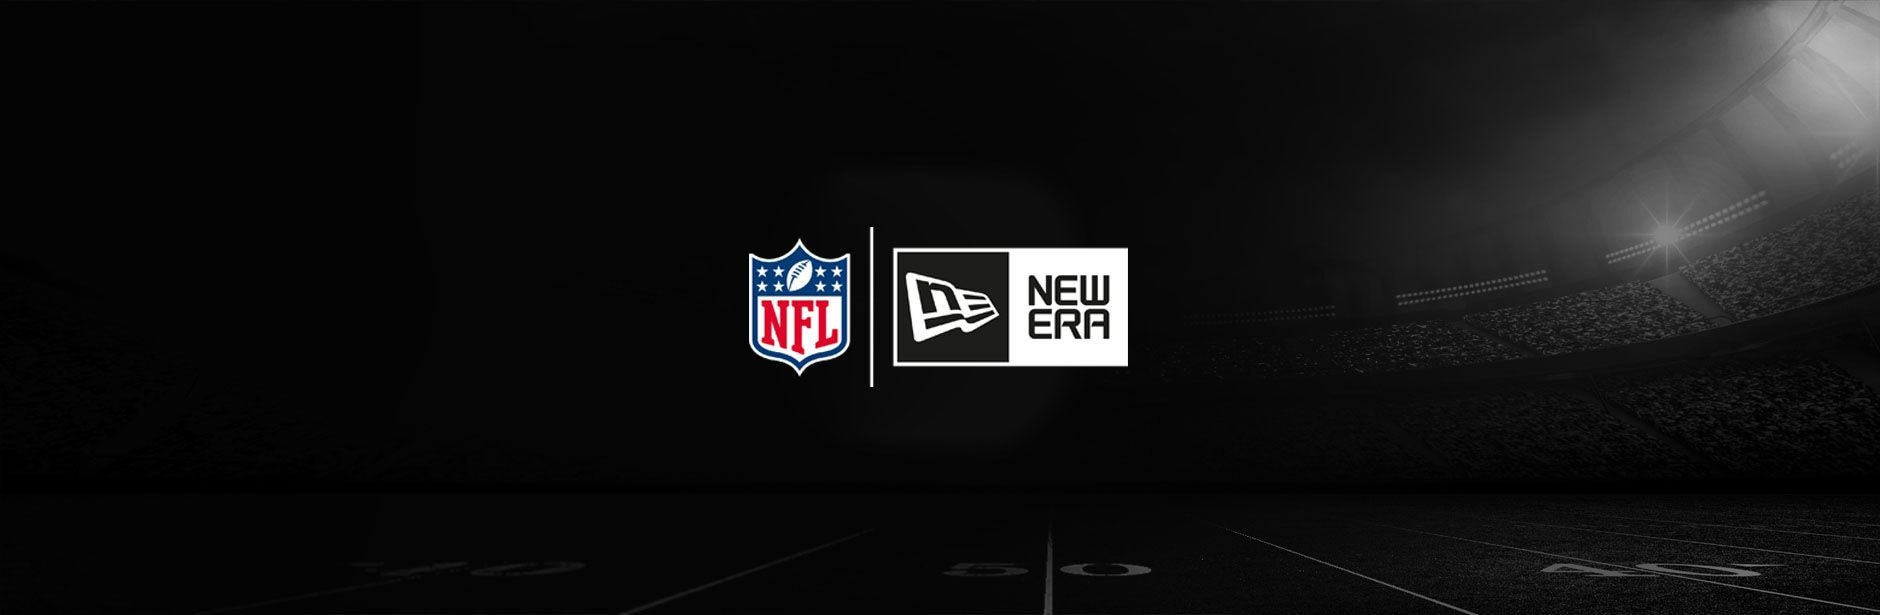 New Era Cap | NFL Caps and Clothing